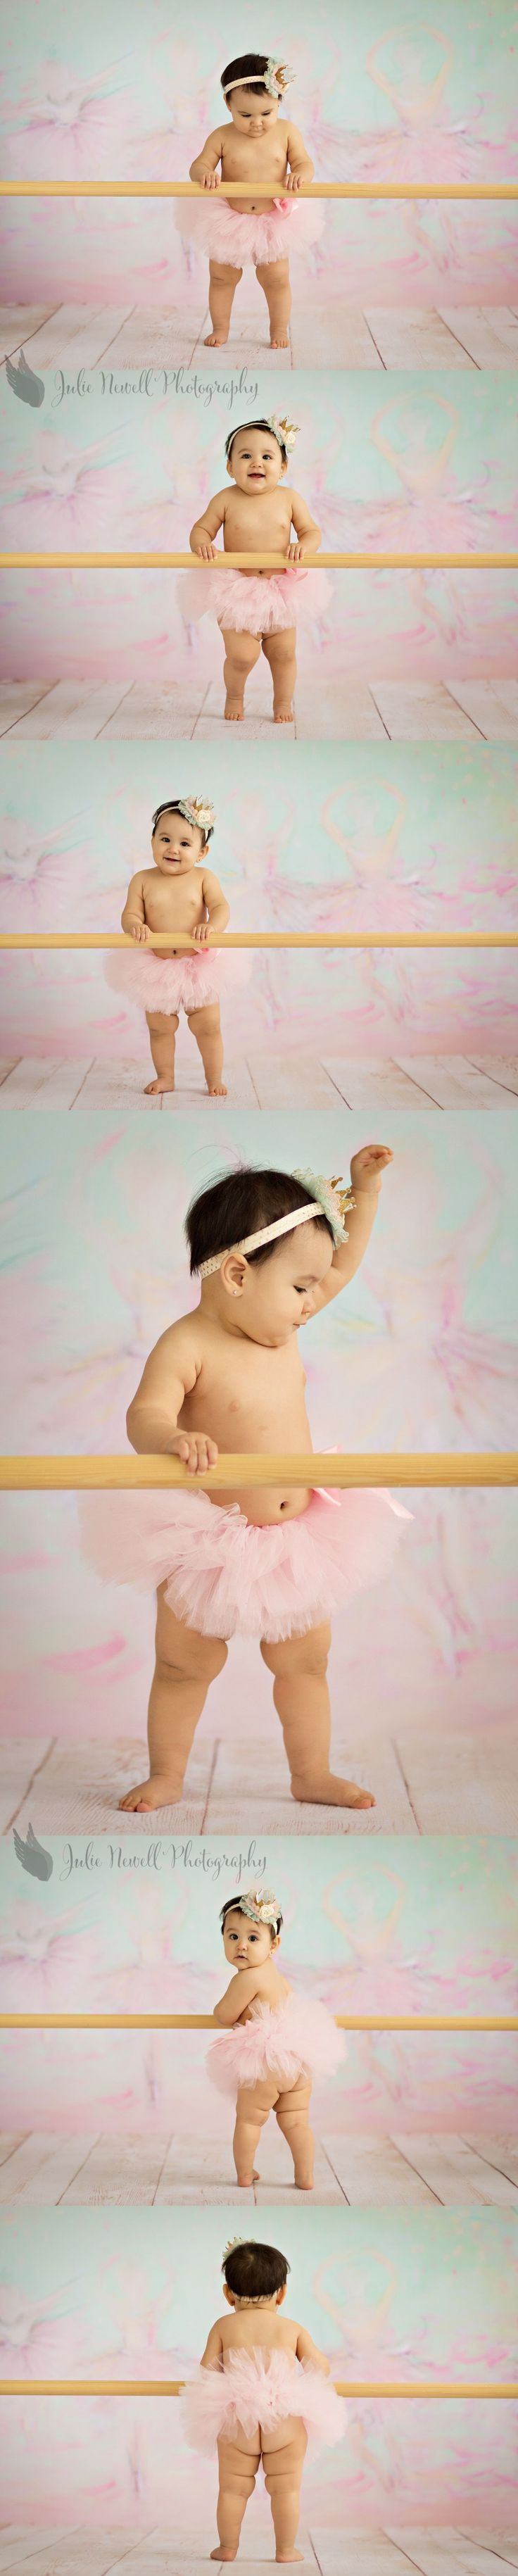 baby photographer, baby photography, chicago baby photographer, chicago baby photography, ballerina baby, ballerina photoshoot